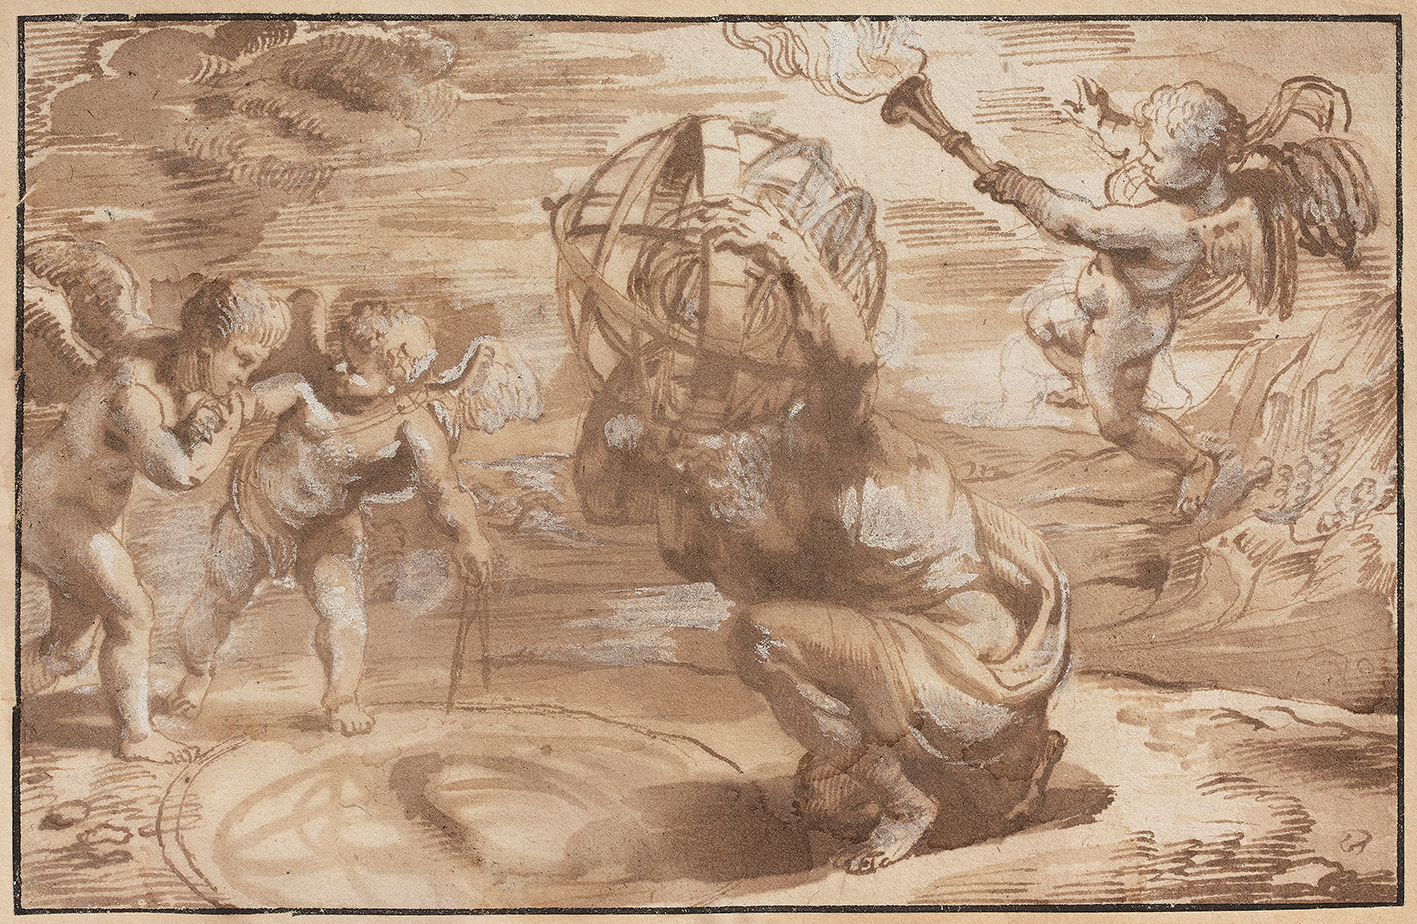 Peter Paul Rubens (1577-1640), draft vignette for Opticorum libri sex by Franciscus Aguilon, c. 1613, pen and brown ink, brown ink wash an